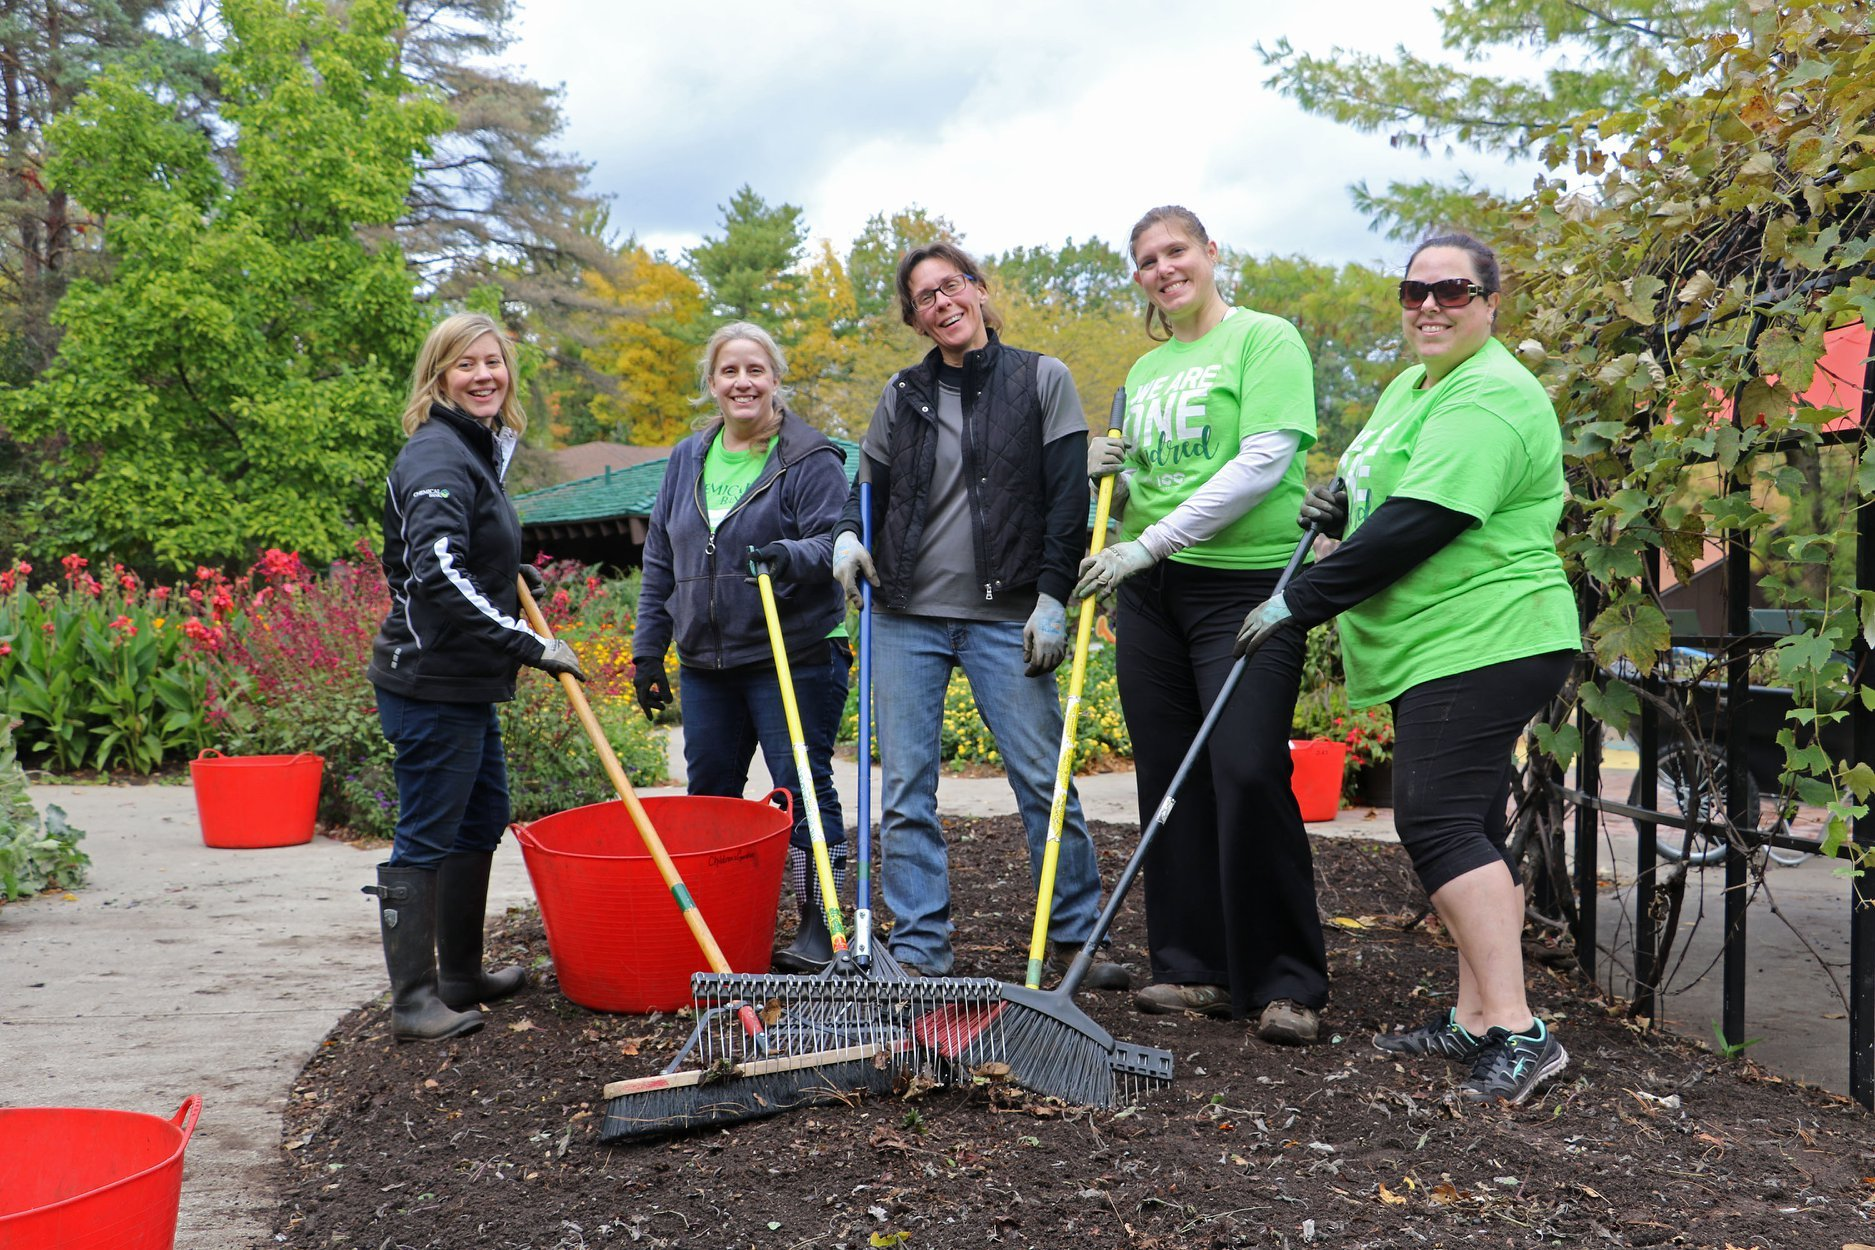 Dow Garden volunteers with rakes